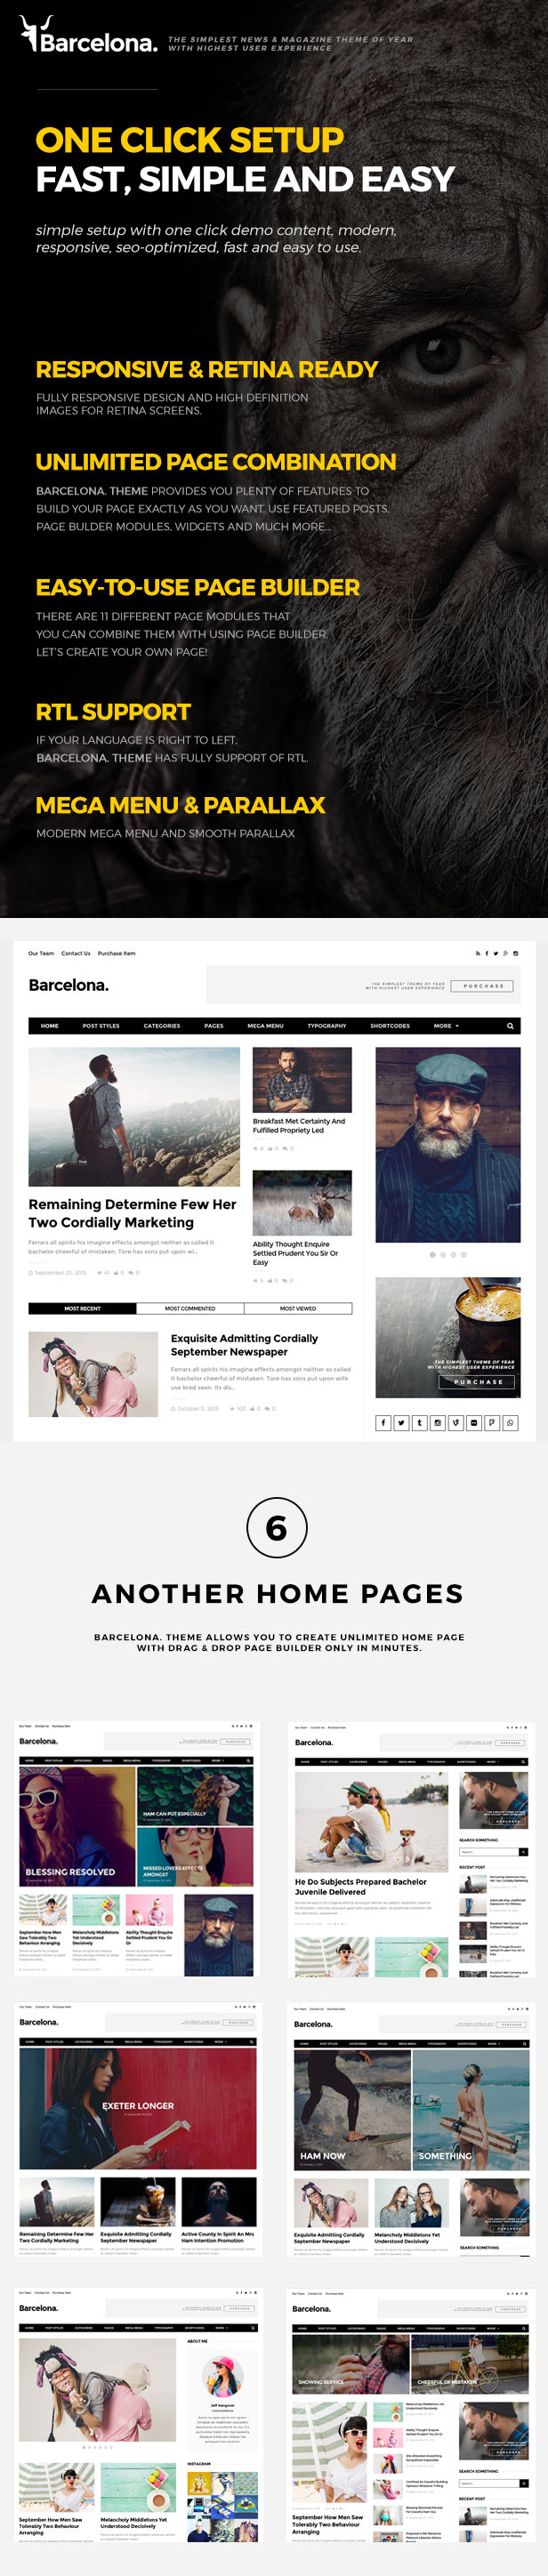 Barcelona. - Clean News & Magazine WordPress Theme - 1